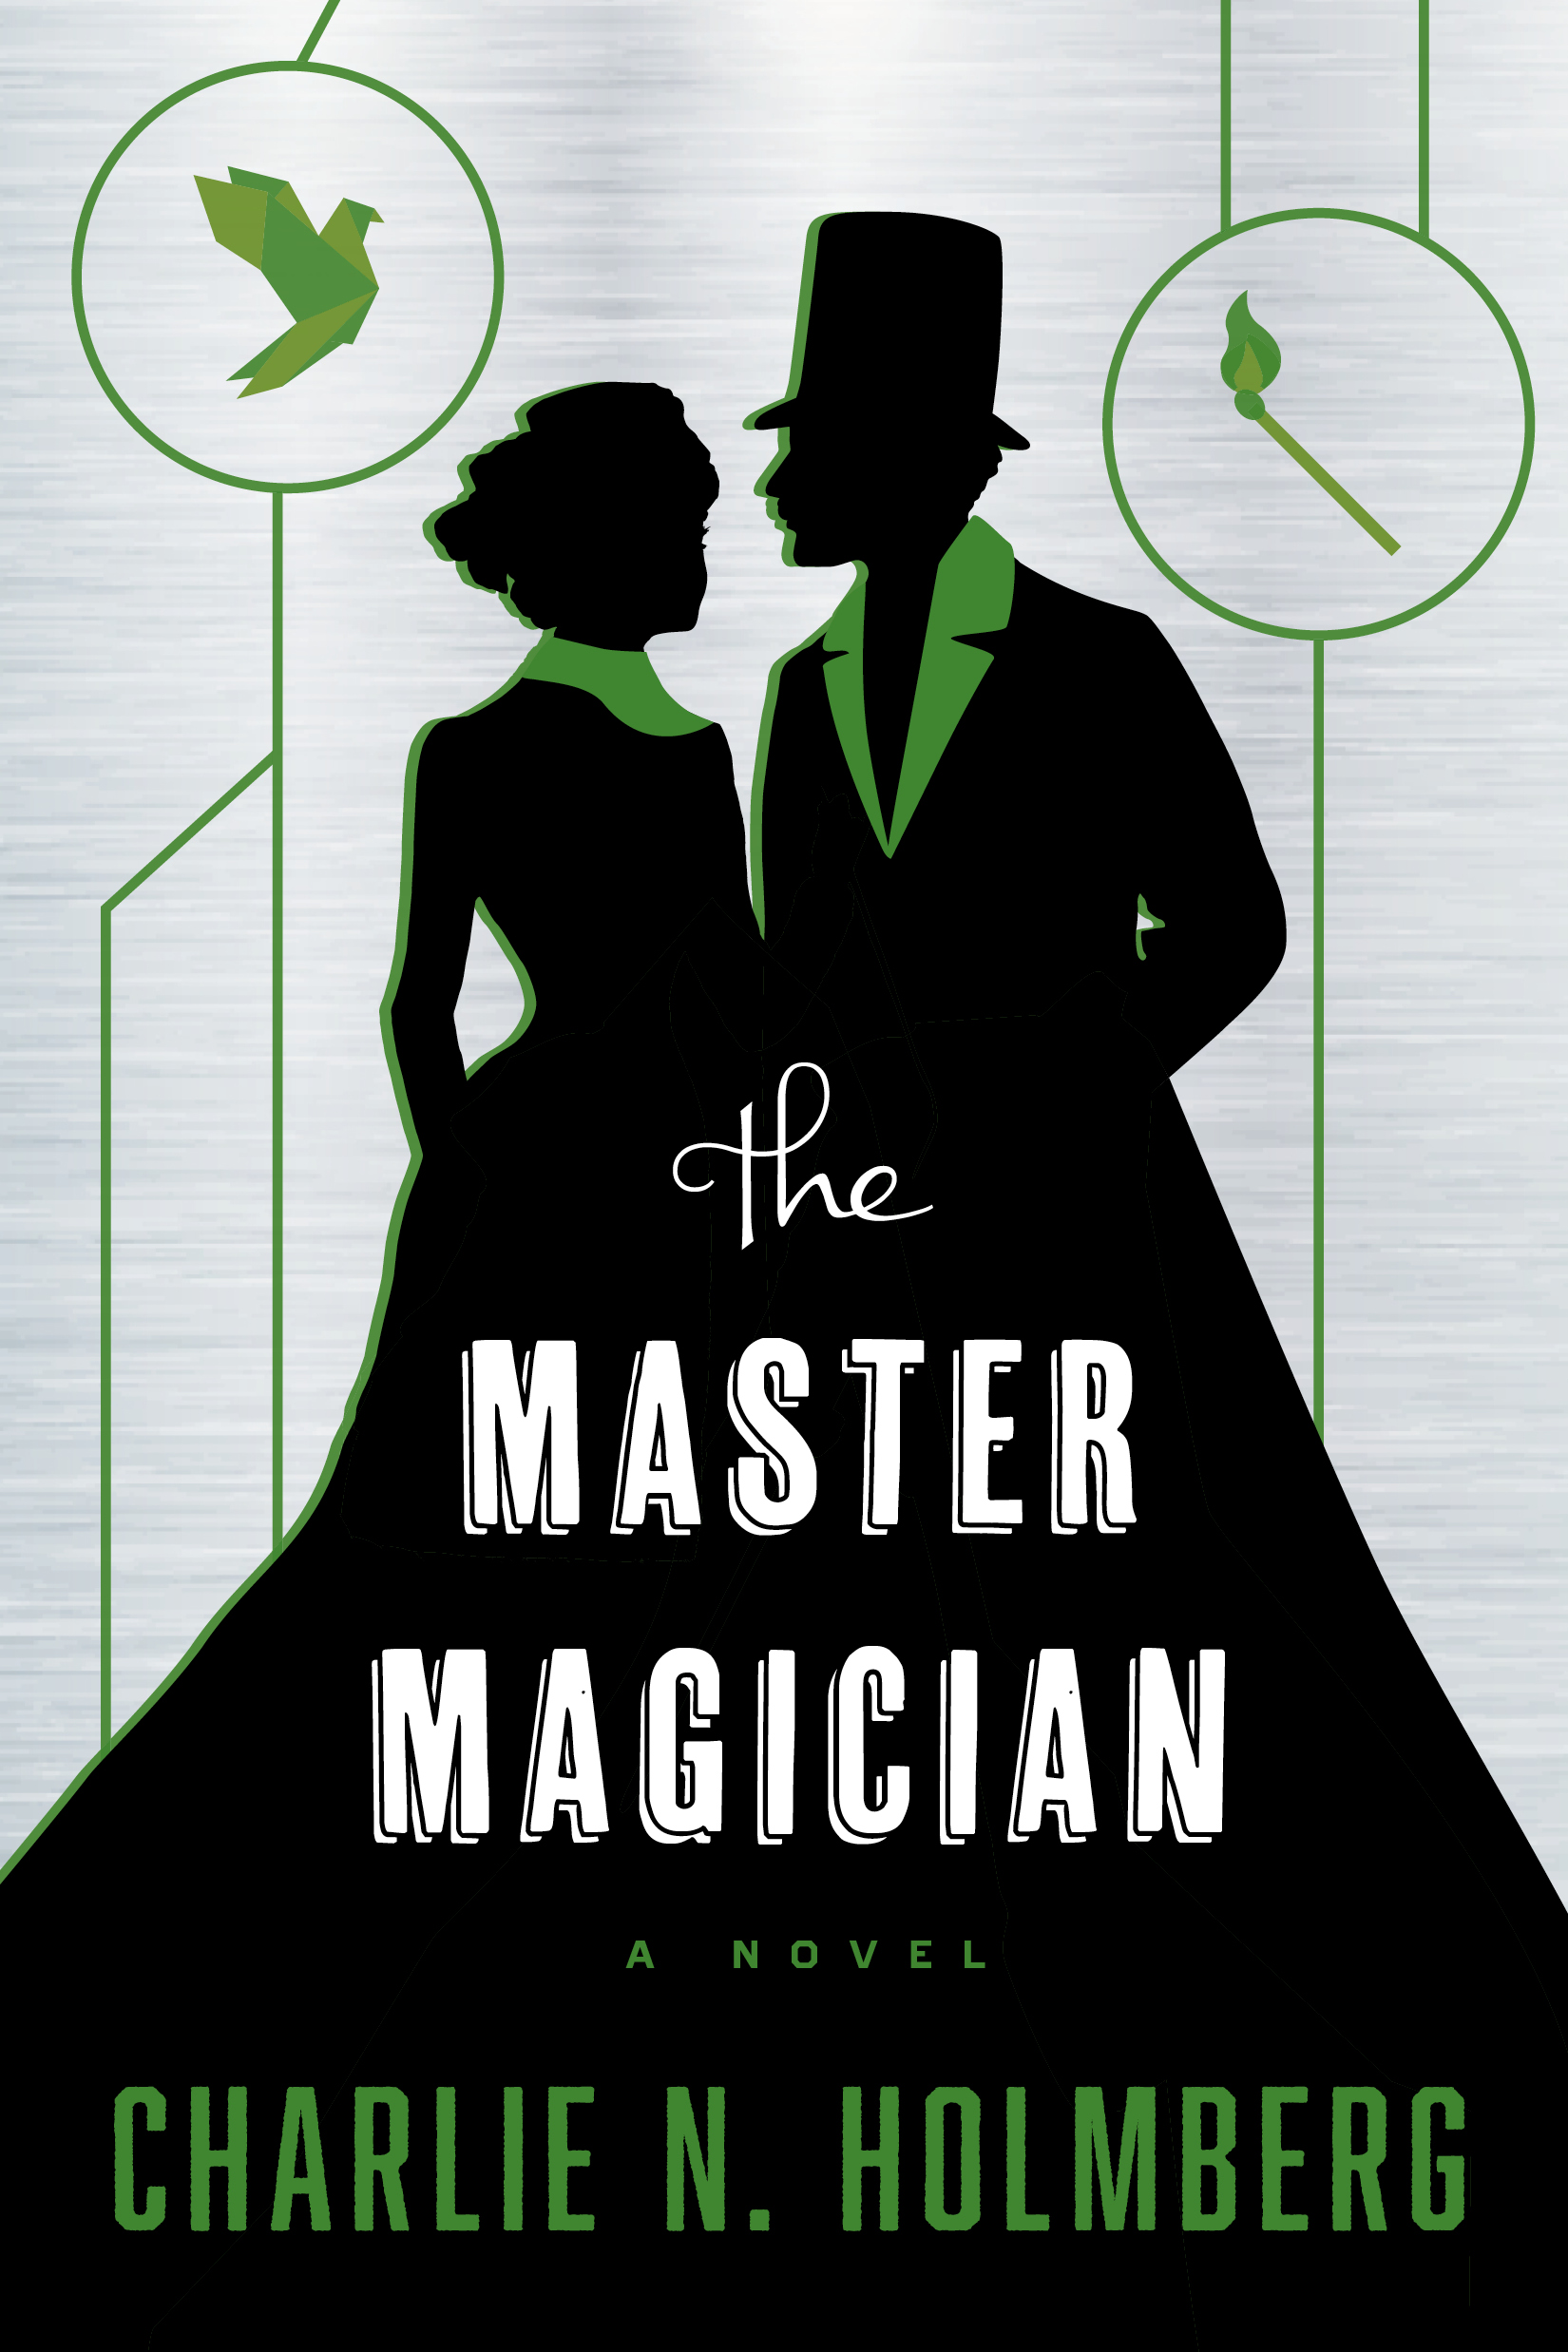 Cover for The Master Magician by Charlie N. Holmberg